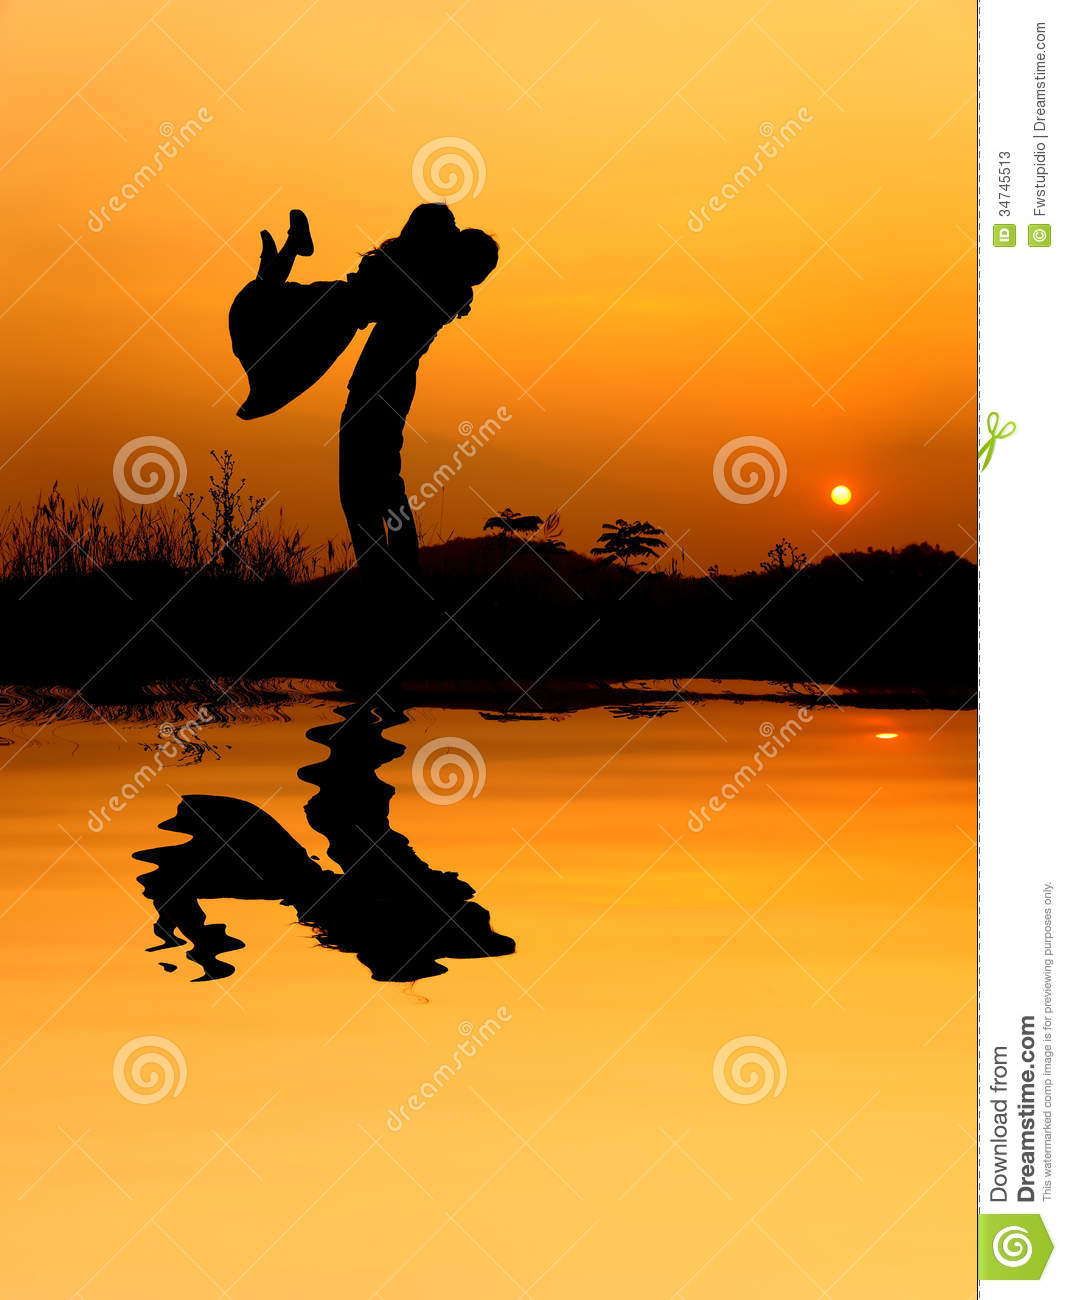 Kissing Girl And Boy Wallpaper Reflection Of Man And Woman Love Silhouette In Sunset